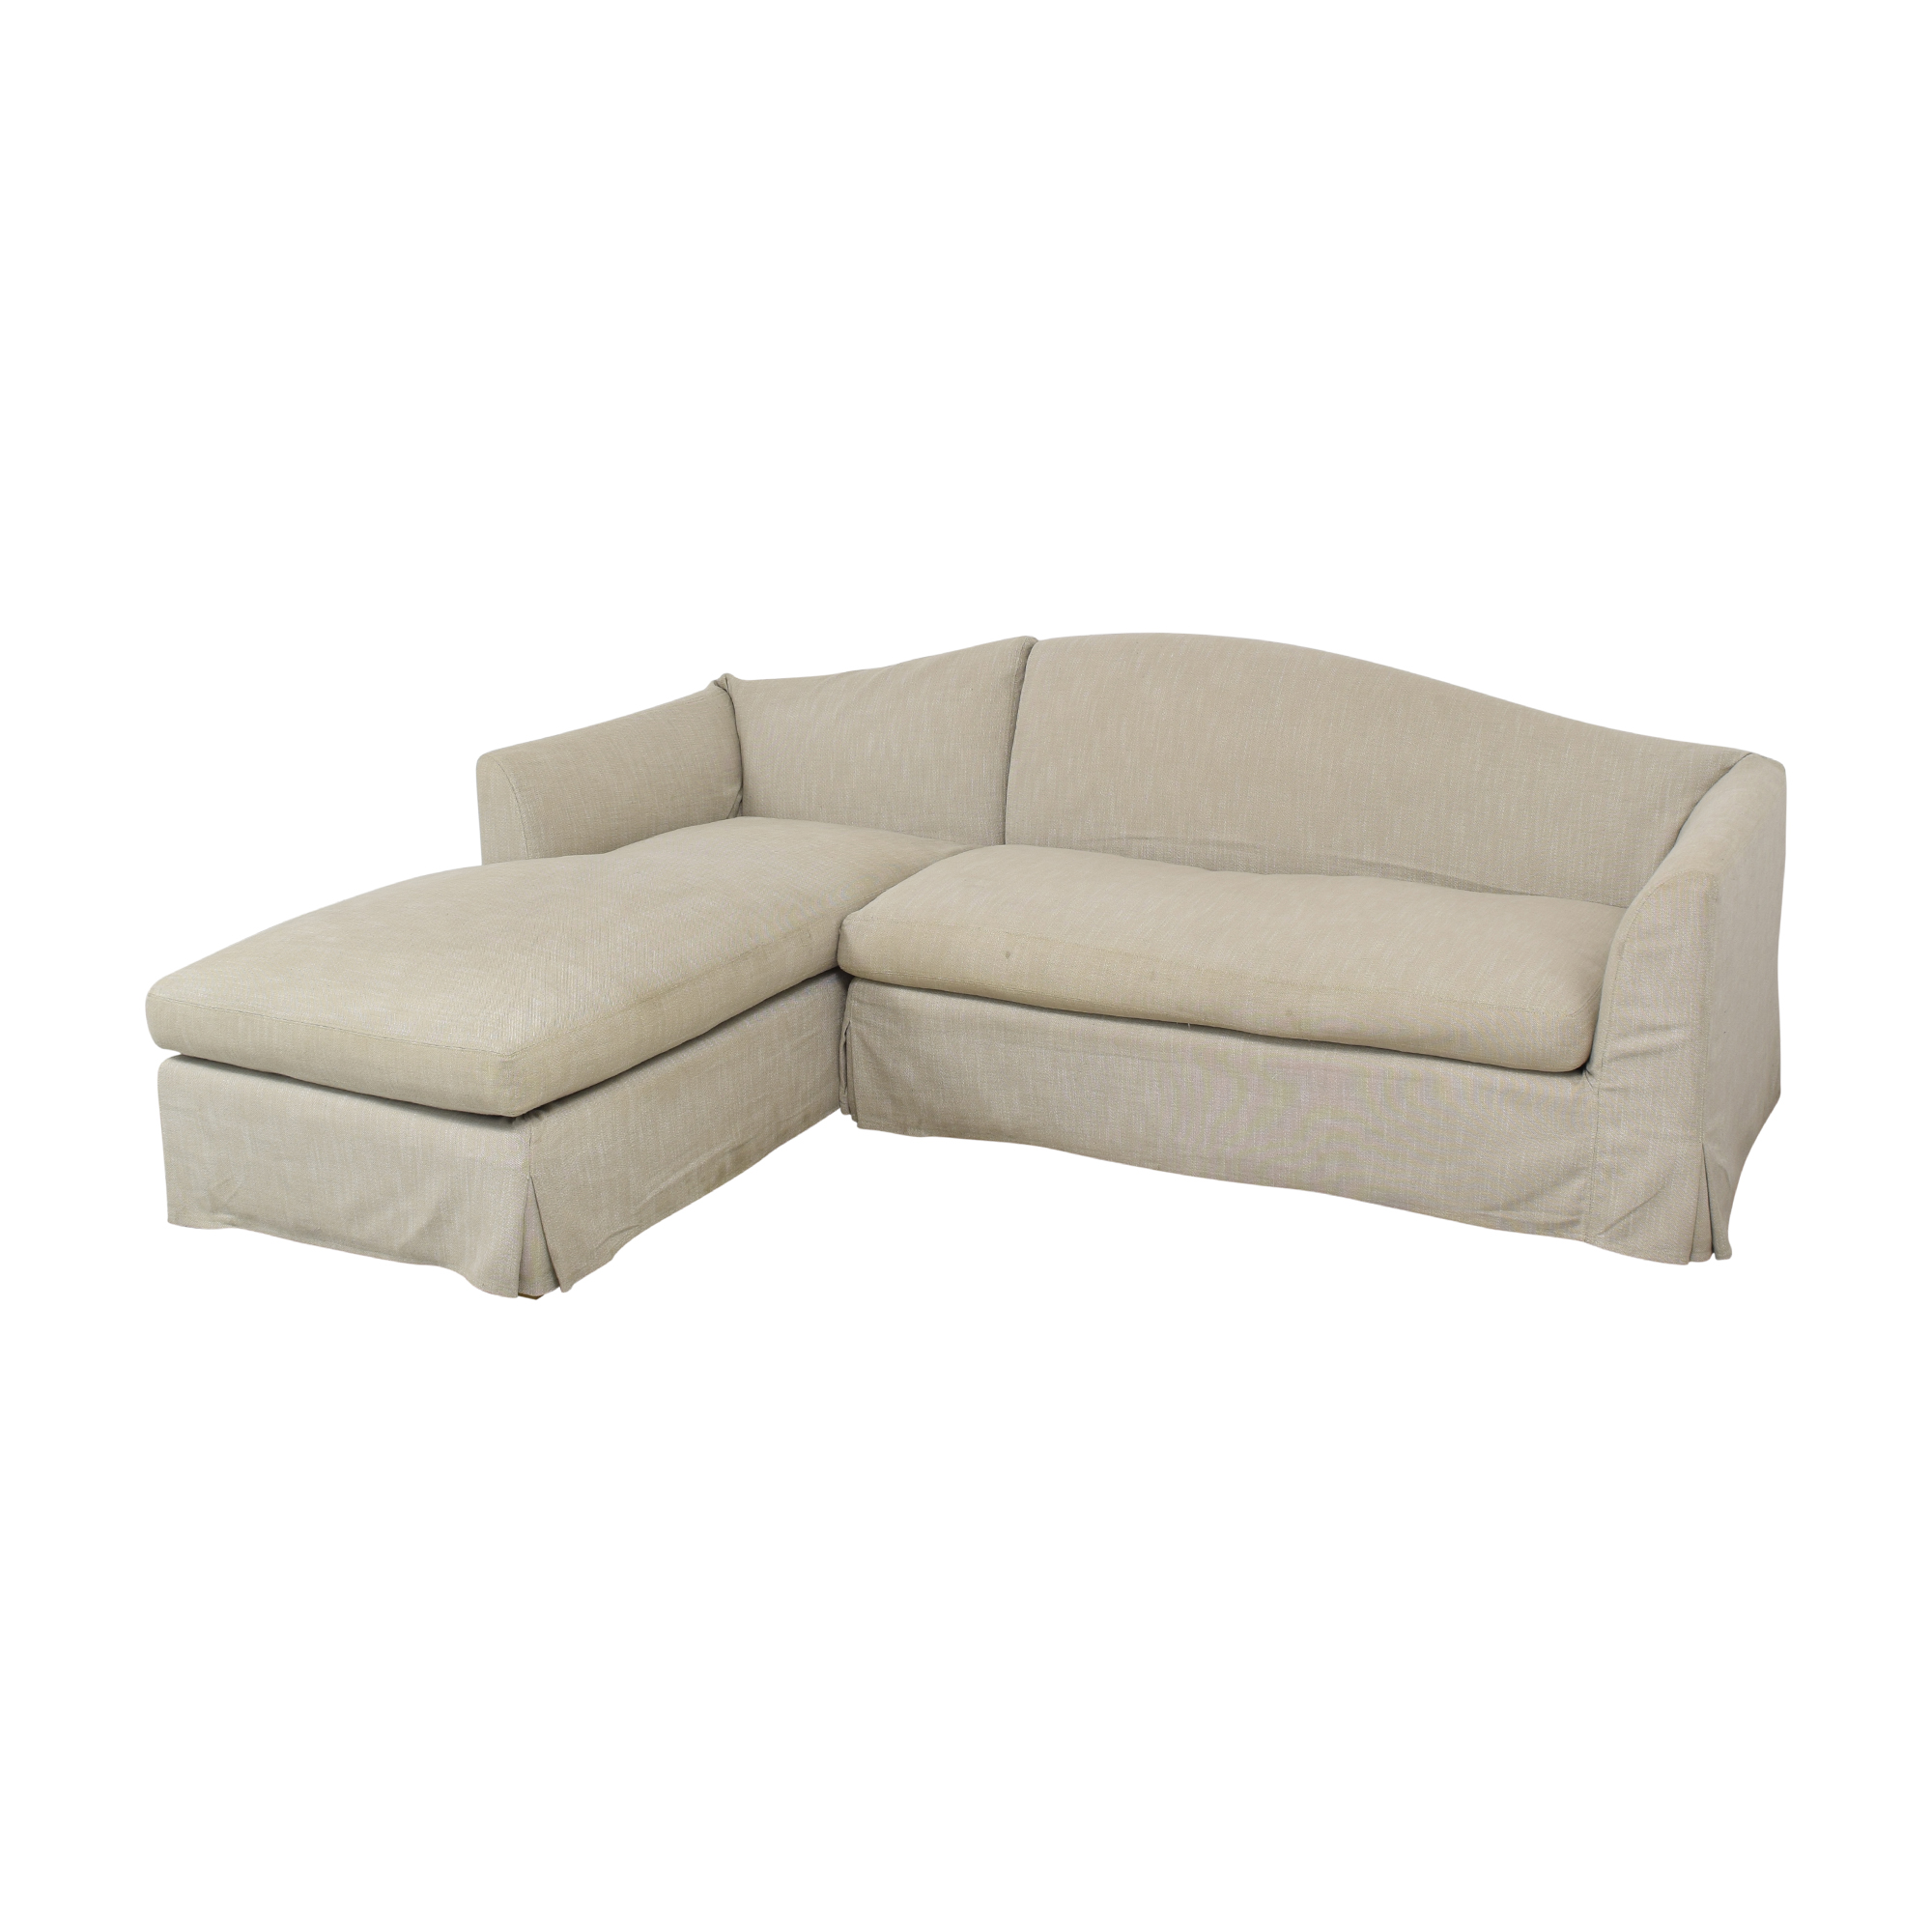 Restoration Hardware Restoration Hardware Belgian Camelback Slipcovered Sectional Sofa with Chaise discount